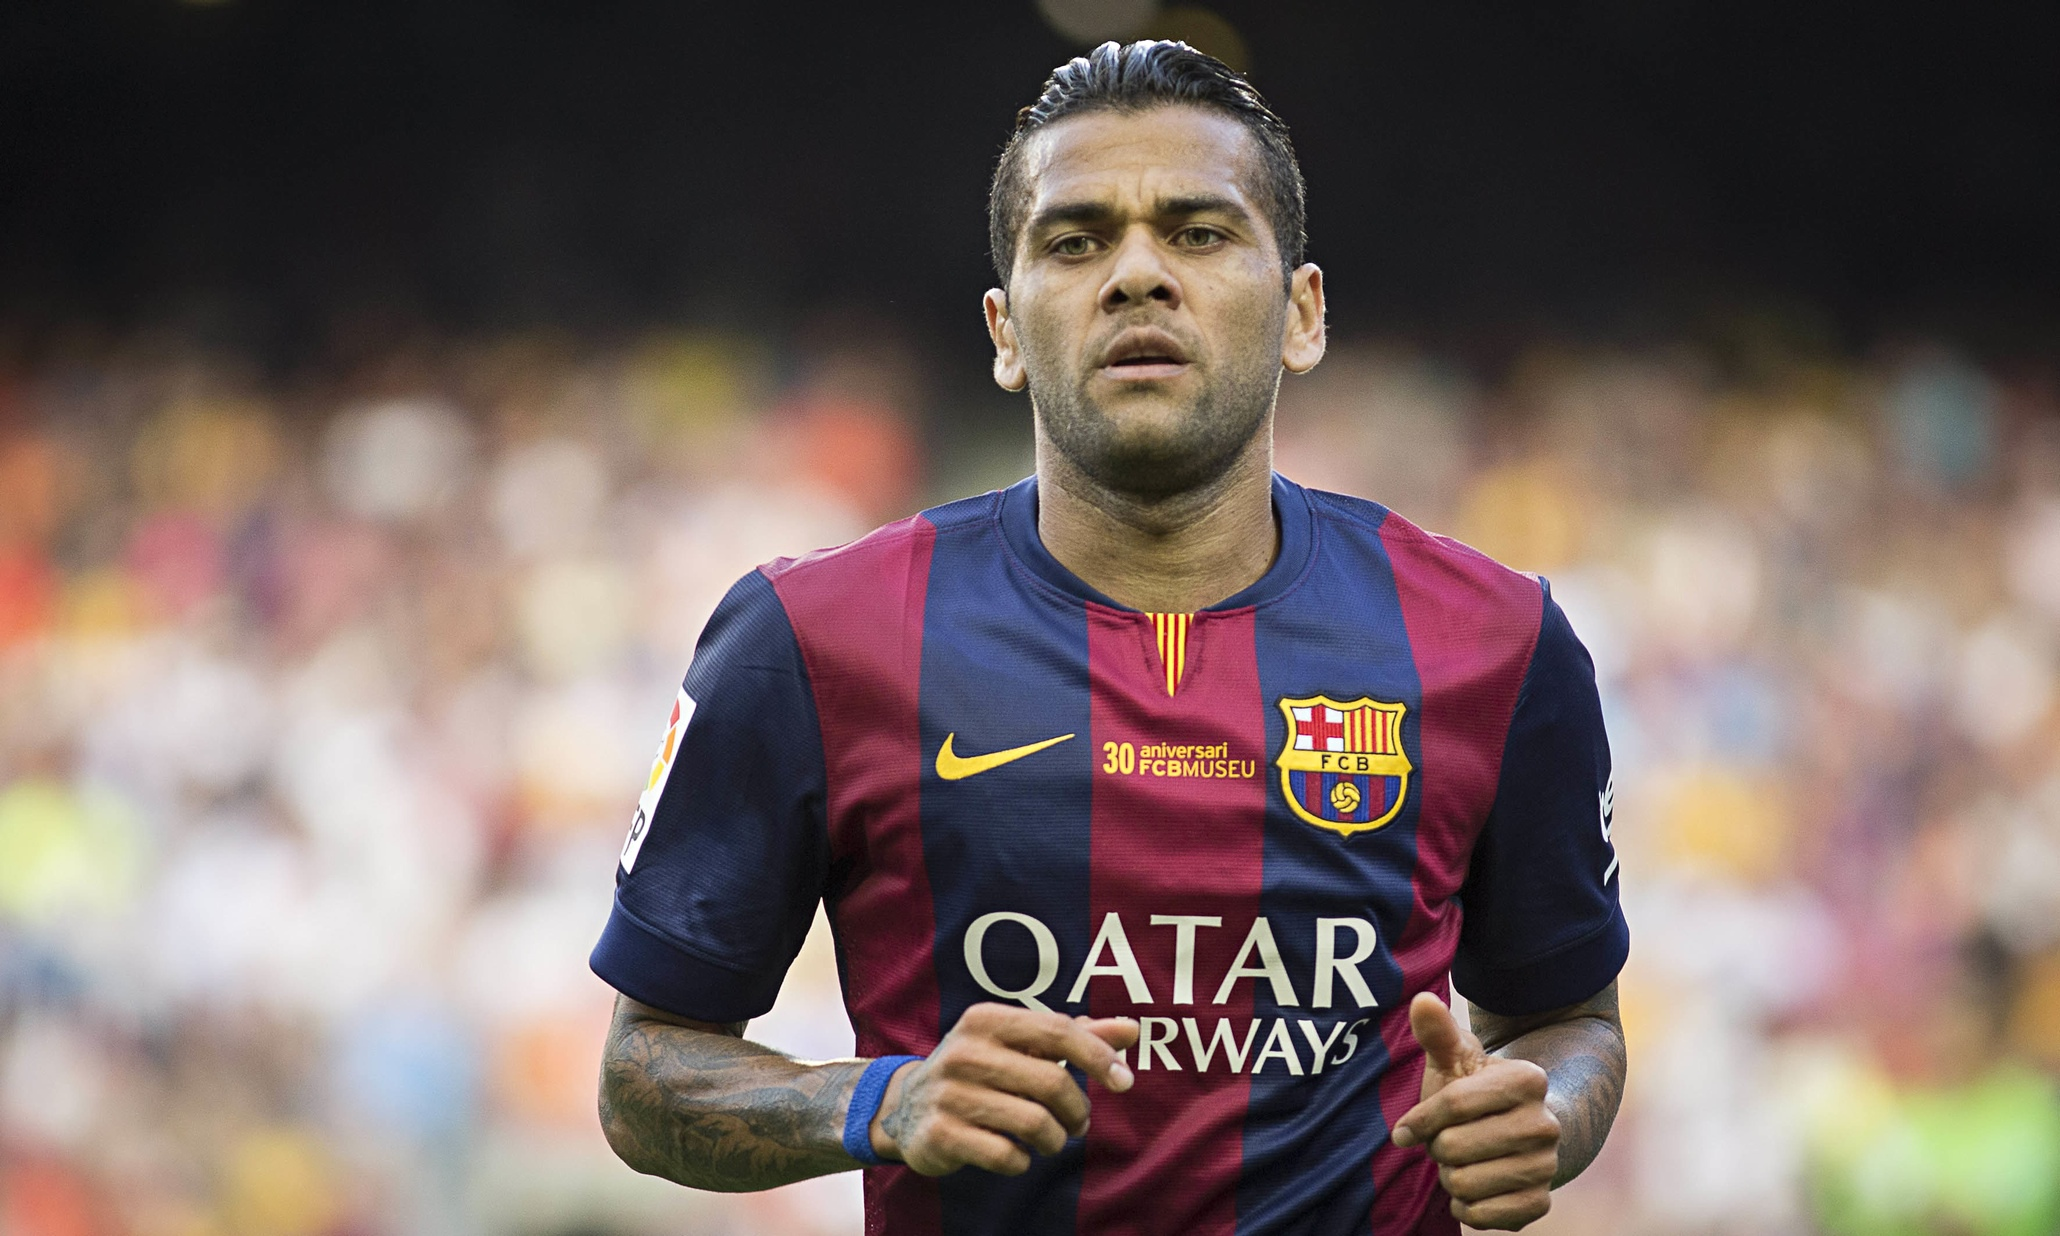 Dani Alves earned a 10 million dollar salary, leaving the net worth at 60 million in 2017